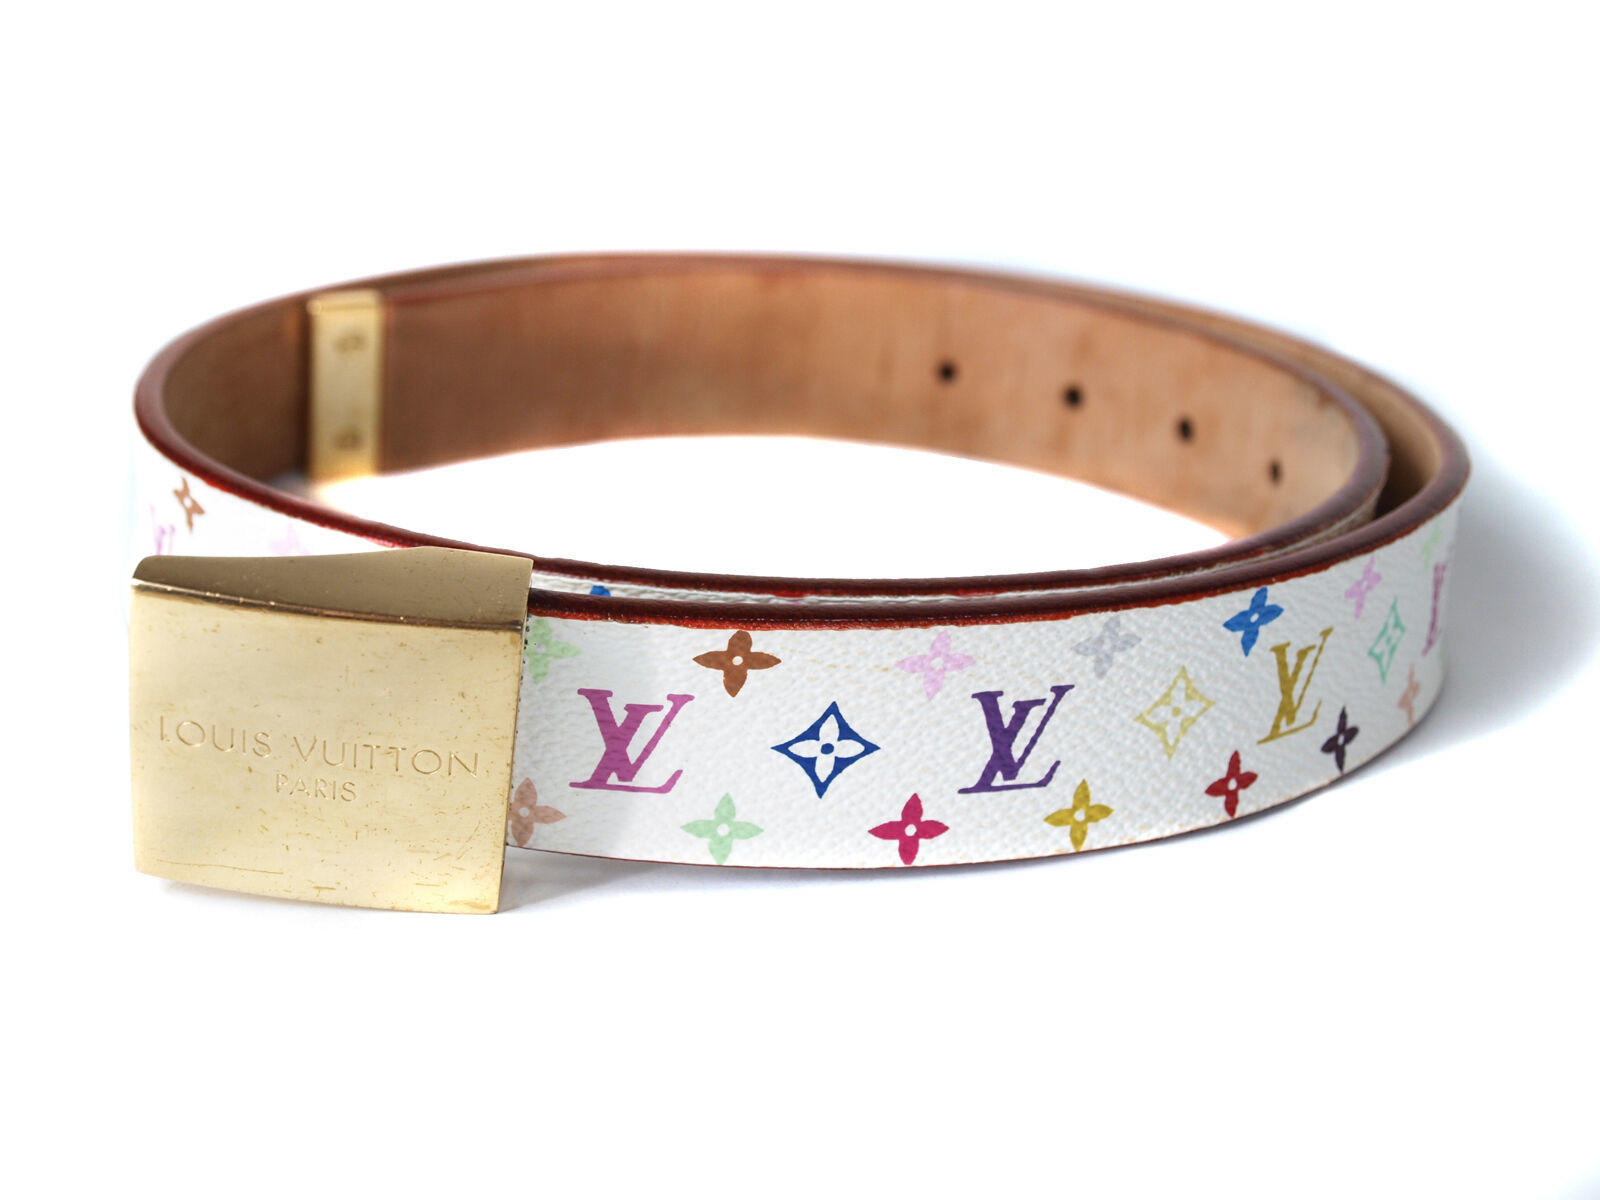 Louis Vuitton Belt: 20 customer reviews and 40 listings